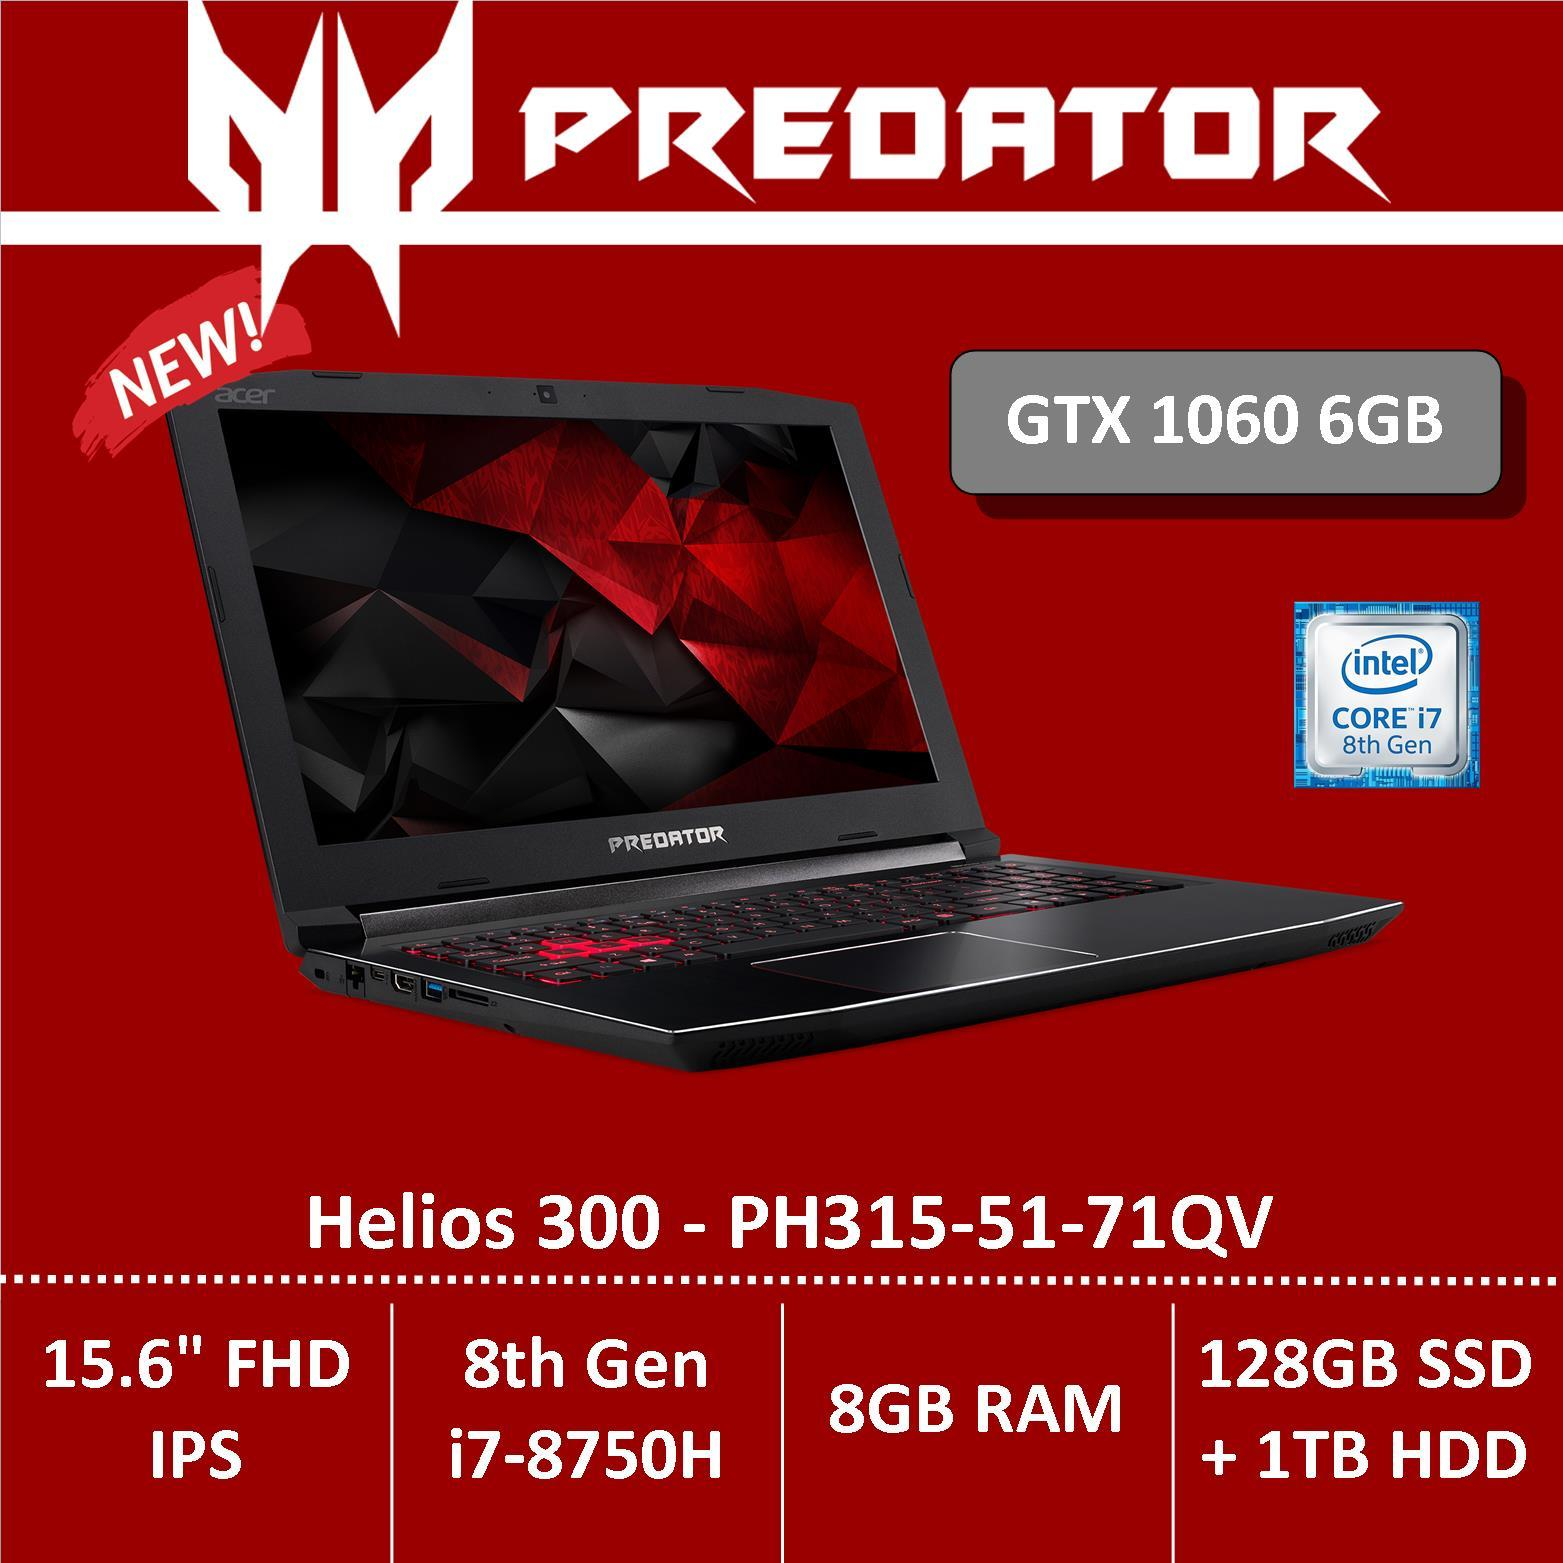 Predator Helios 300 Ph315-51-71qv Gaming Laptop - Gtx1060 Graphics By Acer Official Store.